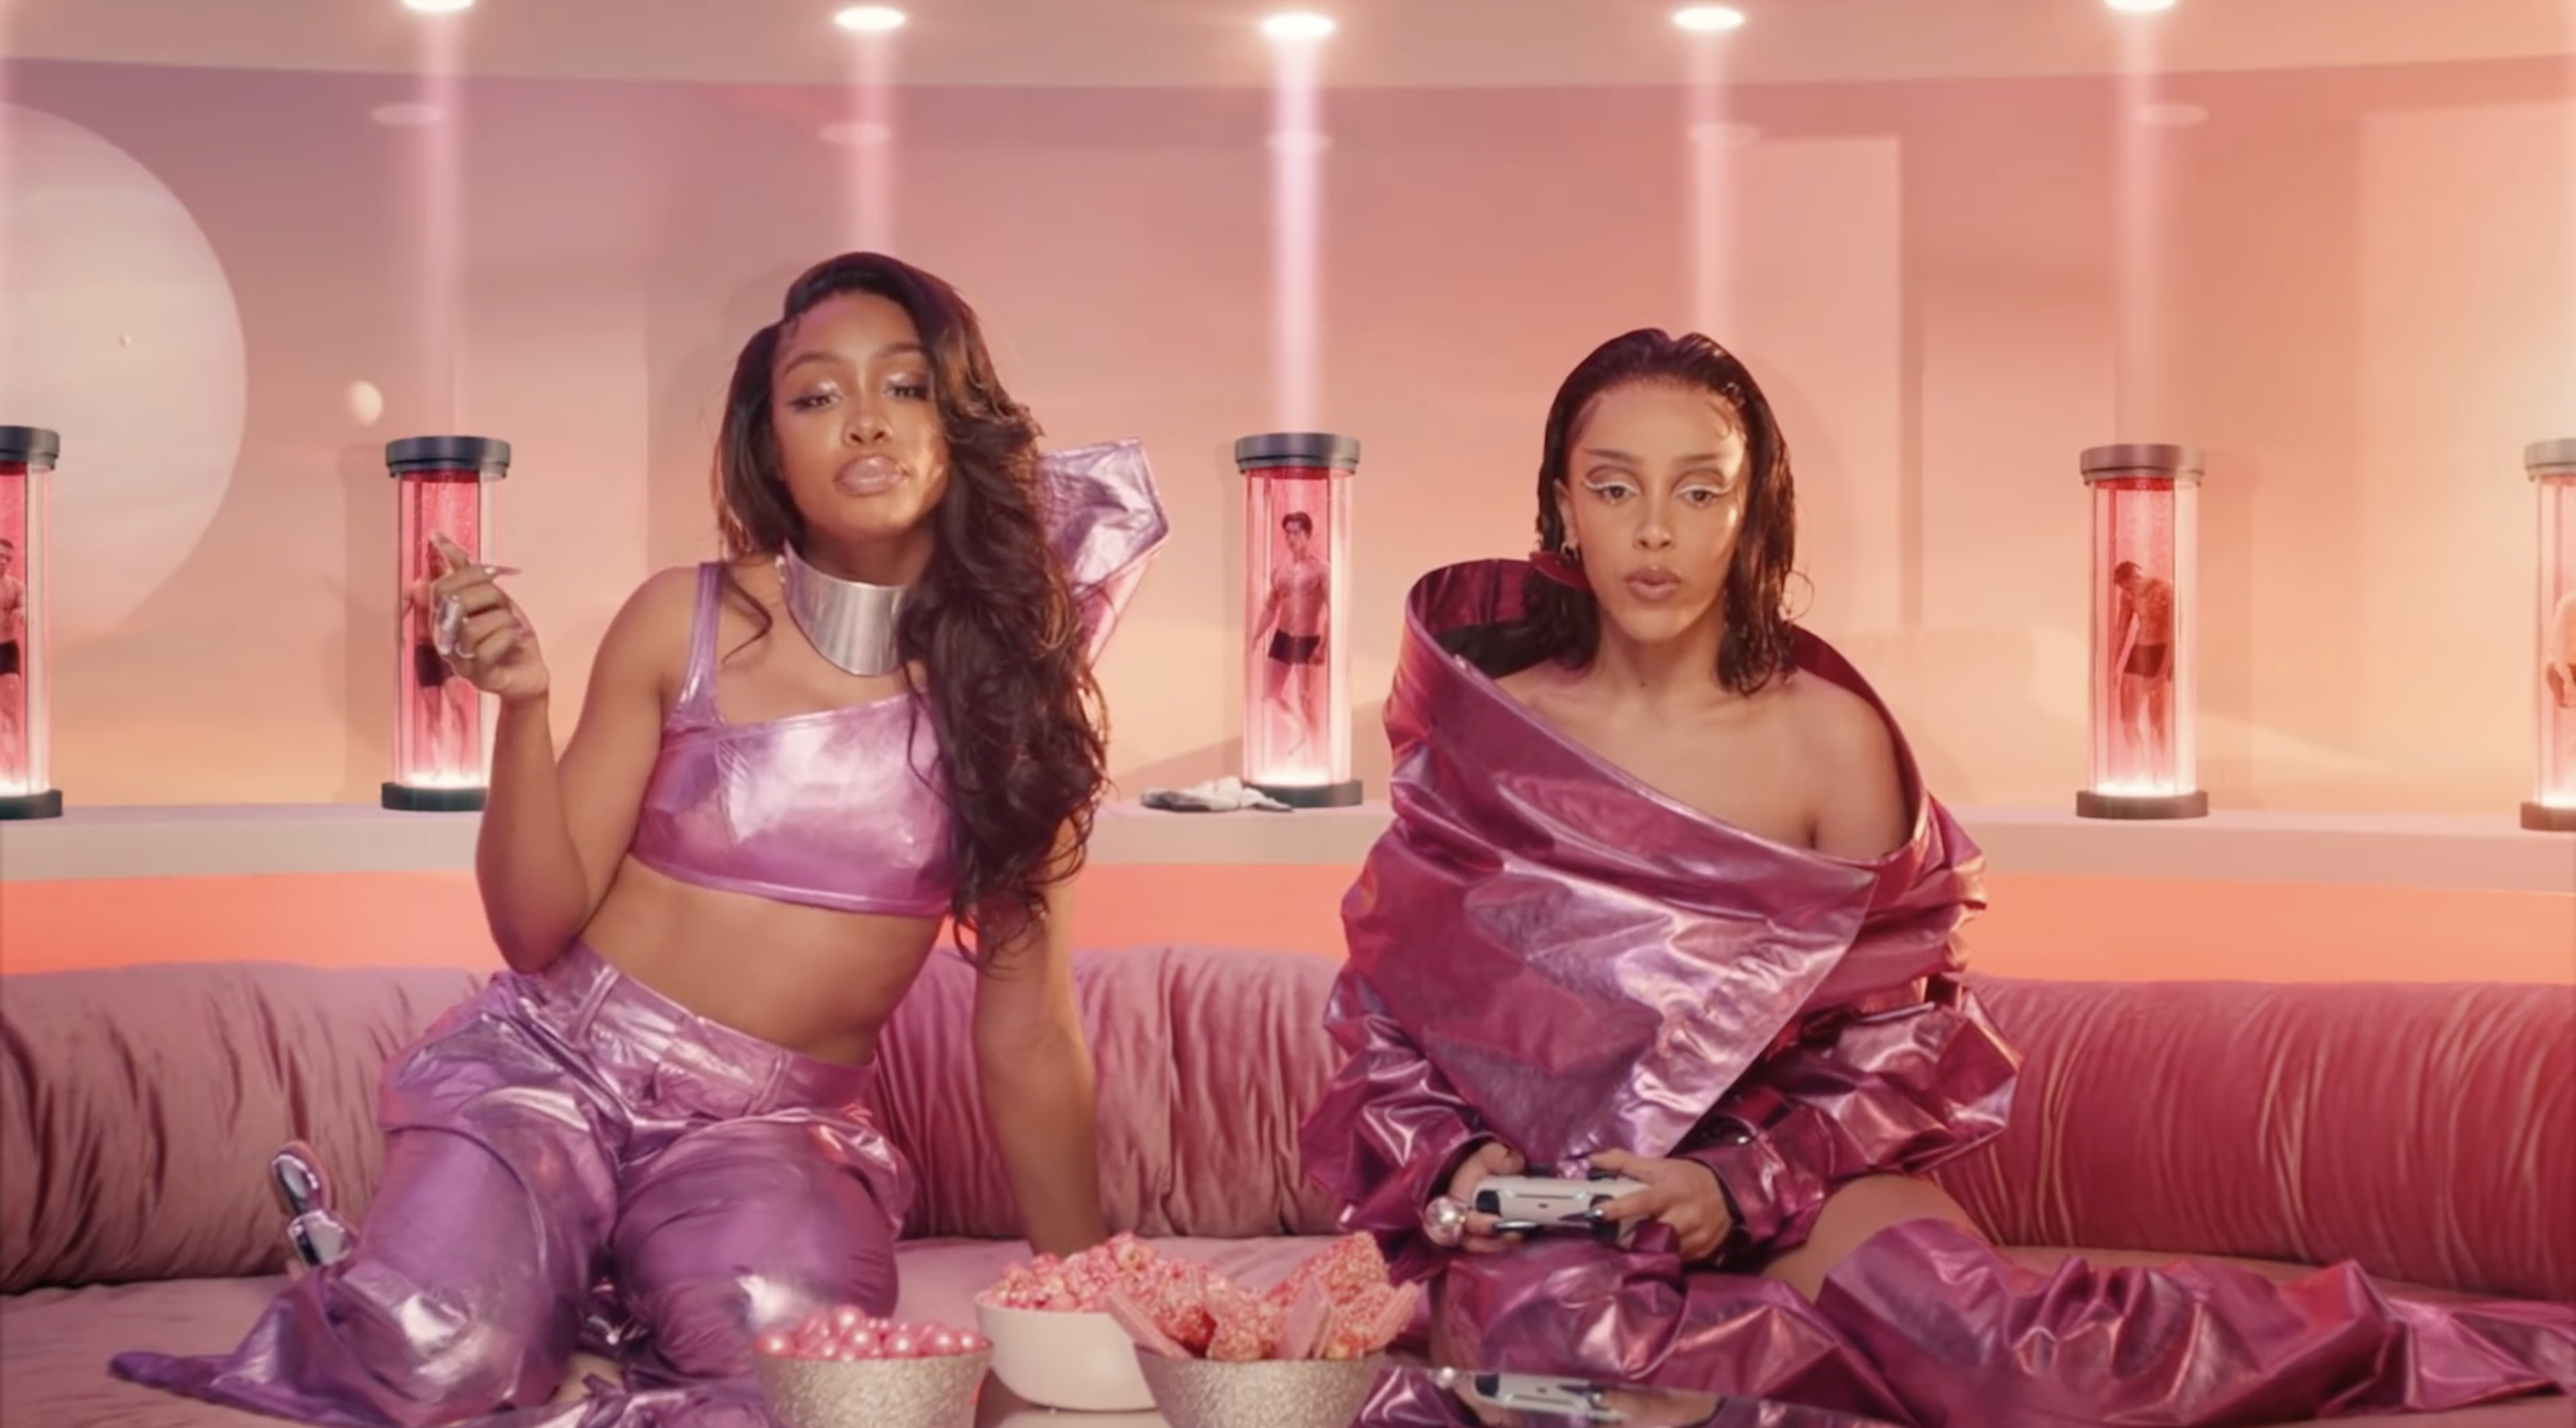 Doja Cat and SZA sitting on a couch, wearing shiny pink outfits while playing video games .